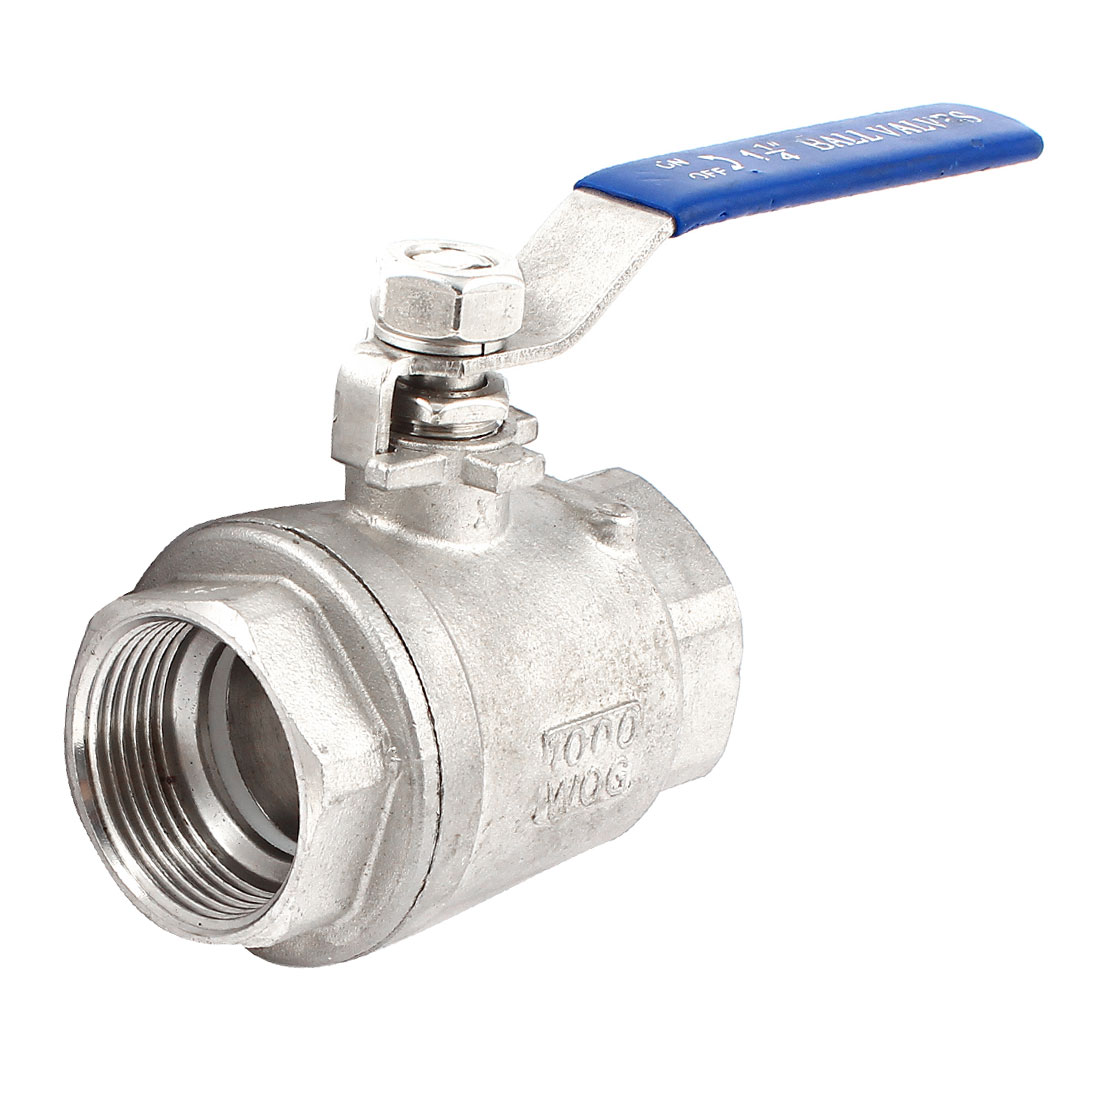 1 1/4PT Dia Female Thread Blue Plastic Coated Handle 90 Degree Rotary Stainless Steel 2 Piece Ball Valve